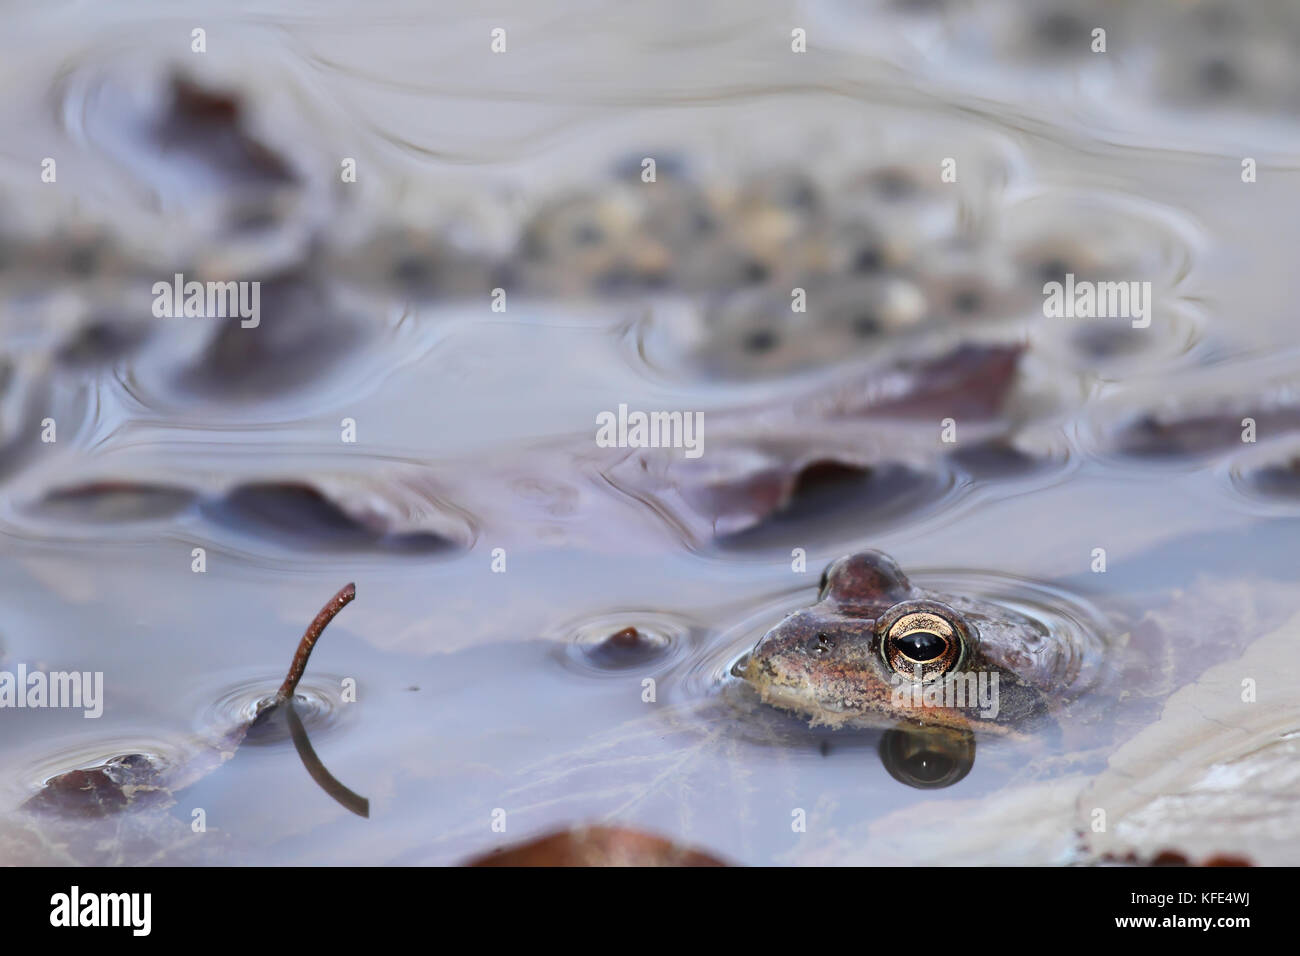 Common frog (Rana temporaria) close to eggs - Stock Image